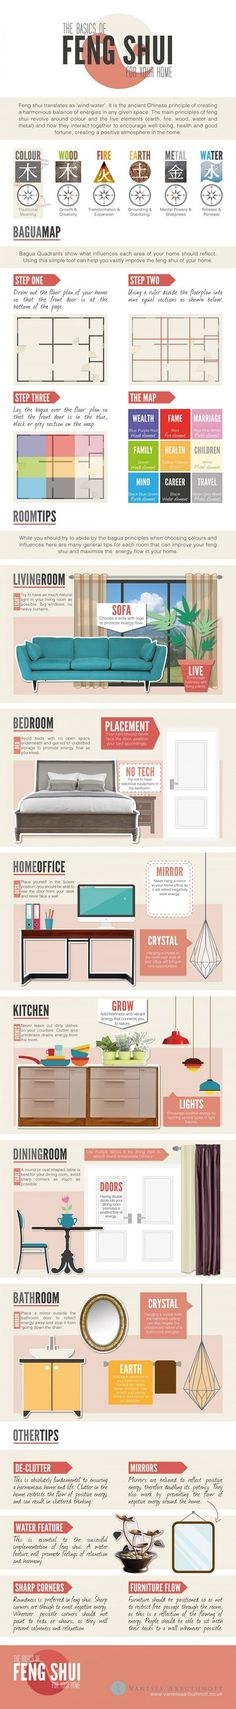 The Basics of Feng Shui For Your Home #Infographic #HomeImprovement